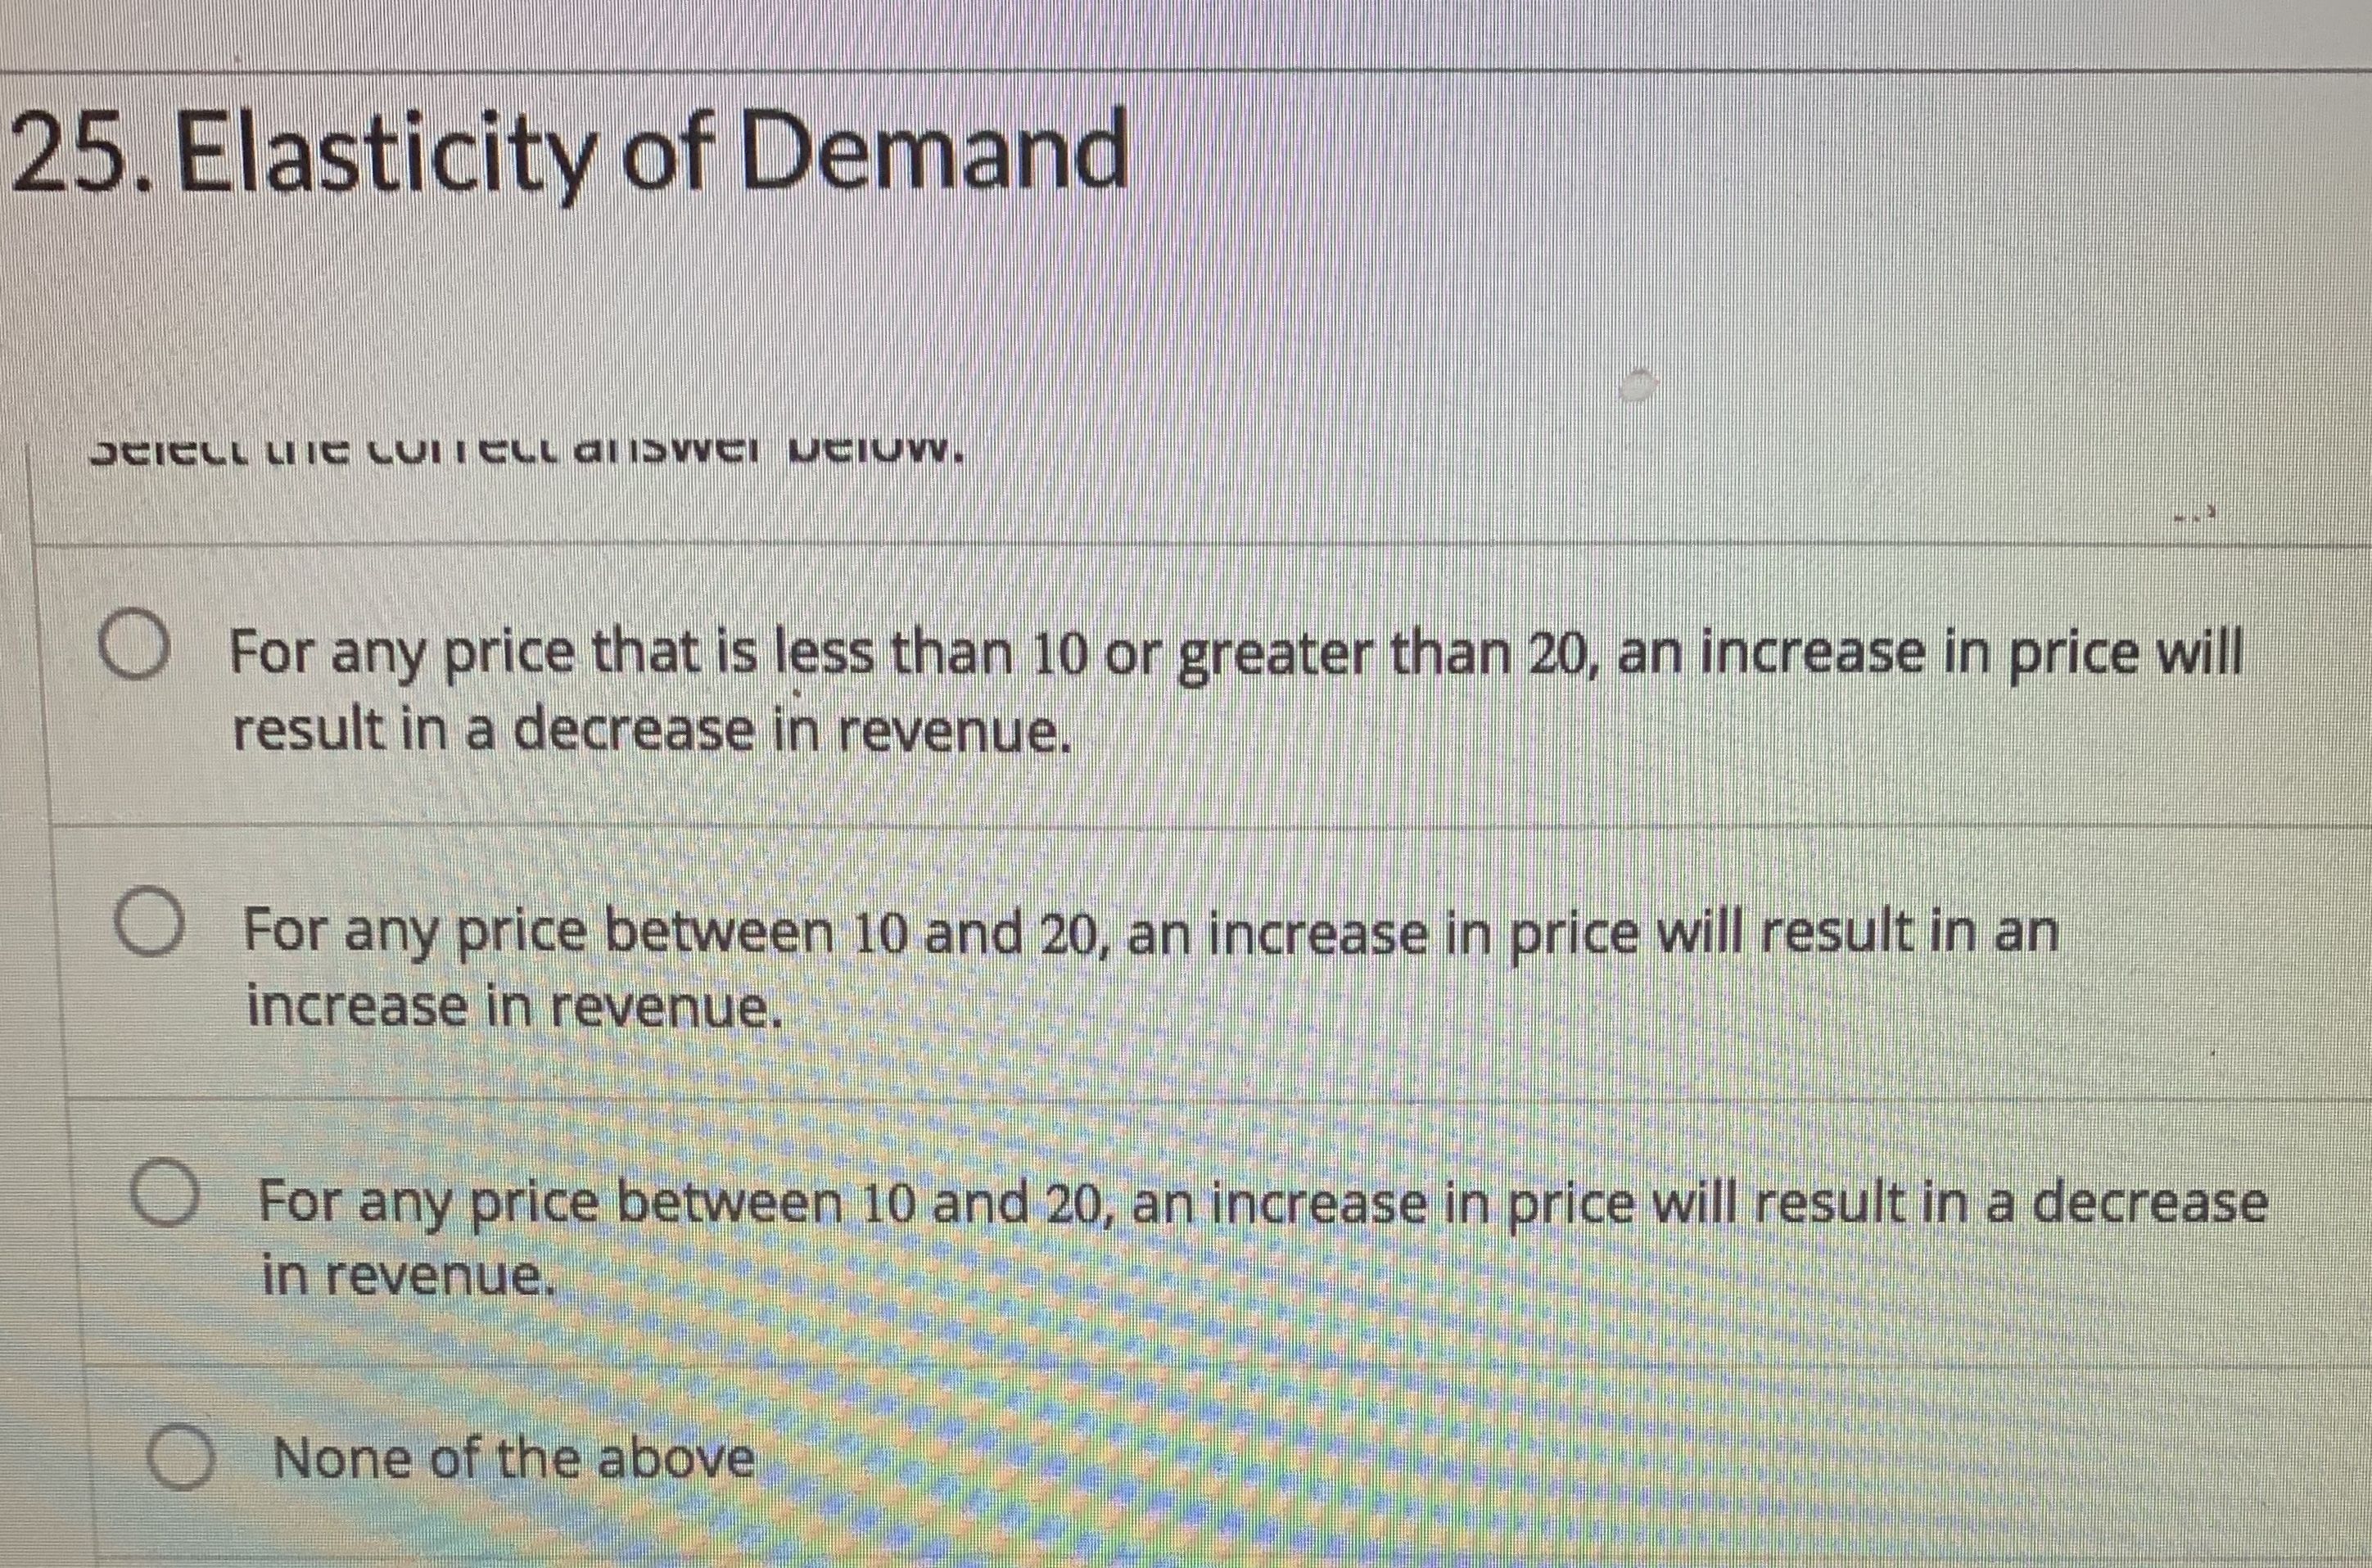 25. Elasticity of Demand UAICLL LIIE CUITELL aliSvVEI UCIUW. O For any price that is less than 10 or greater than 20, an increase in price will result in a decrease in revenue. O For any price between 10 and 20, an increase in price will result in an increase in revenue. O For any price between 10 and 20, an increase in price will result in a decrease in revenue. O None of the above